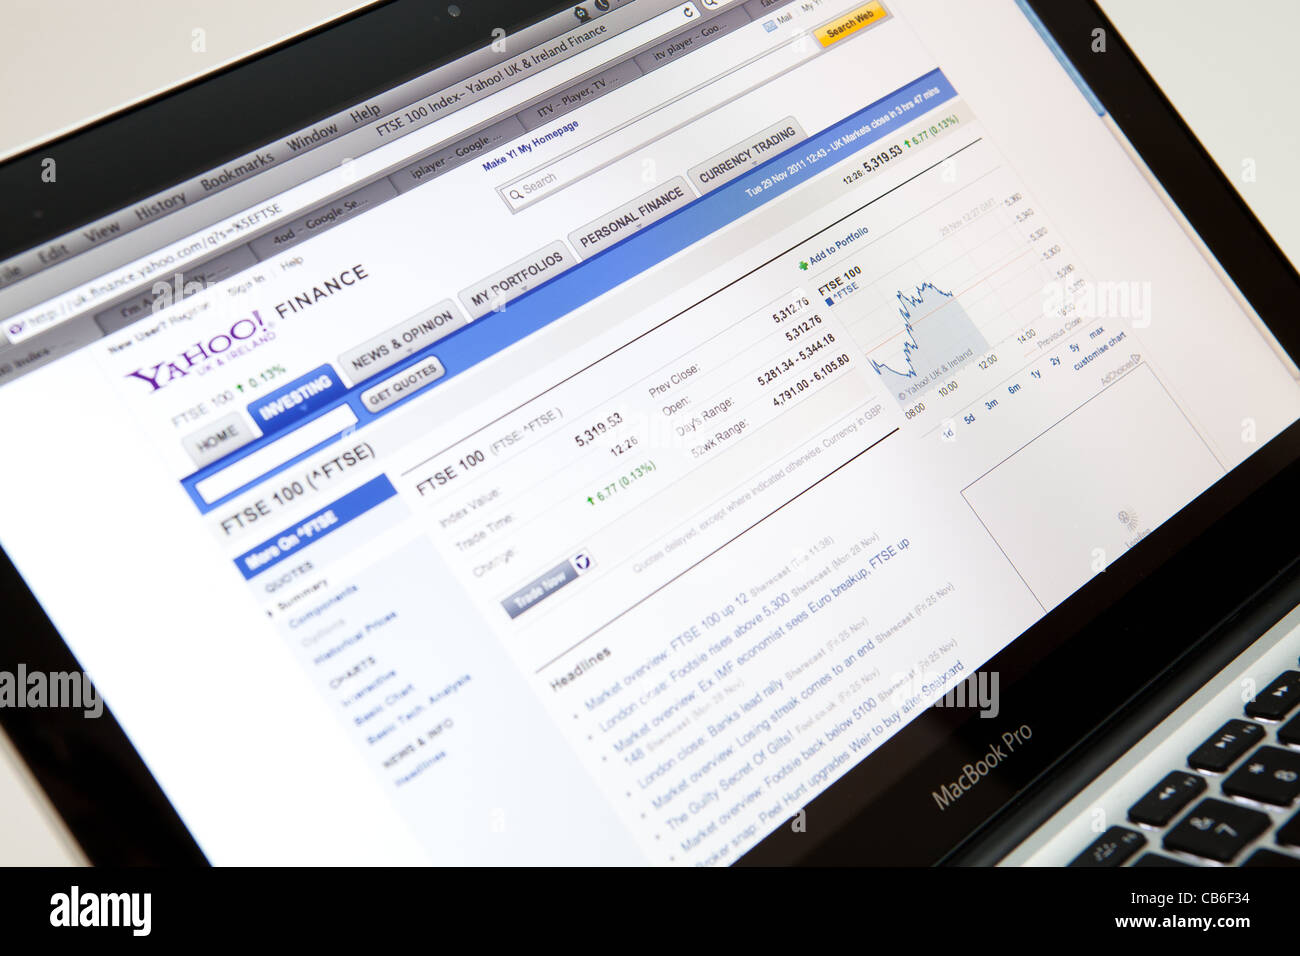 Yahoo Finance Website Screen shot of web page - Stock Image